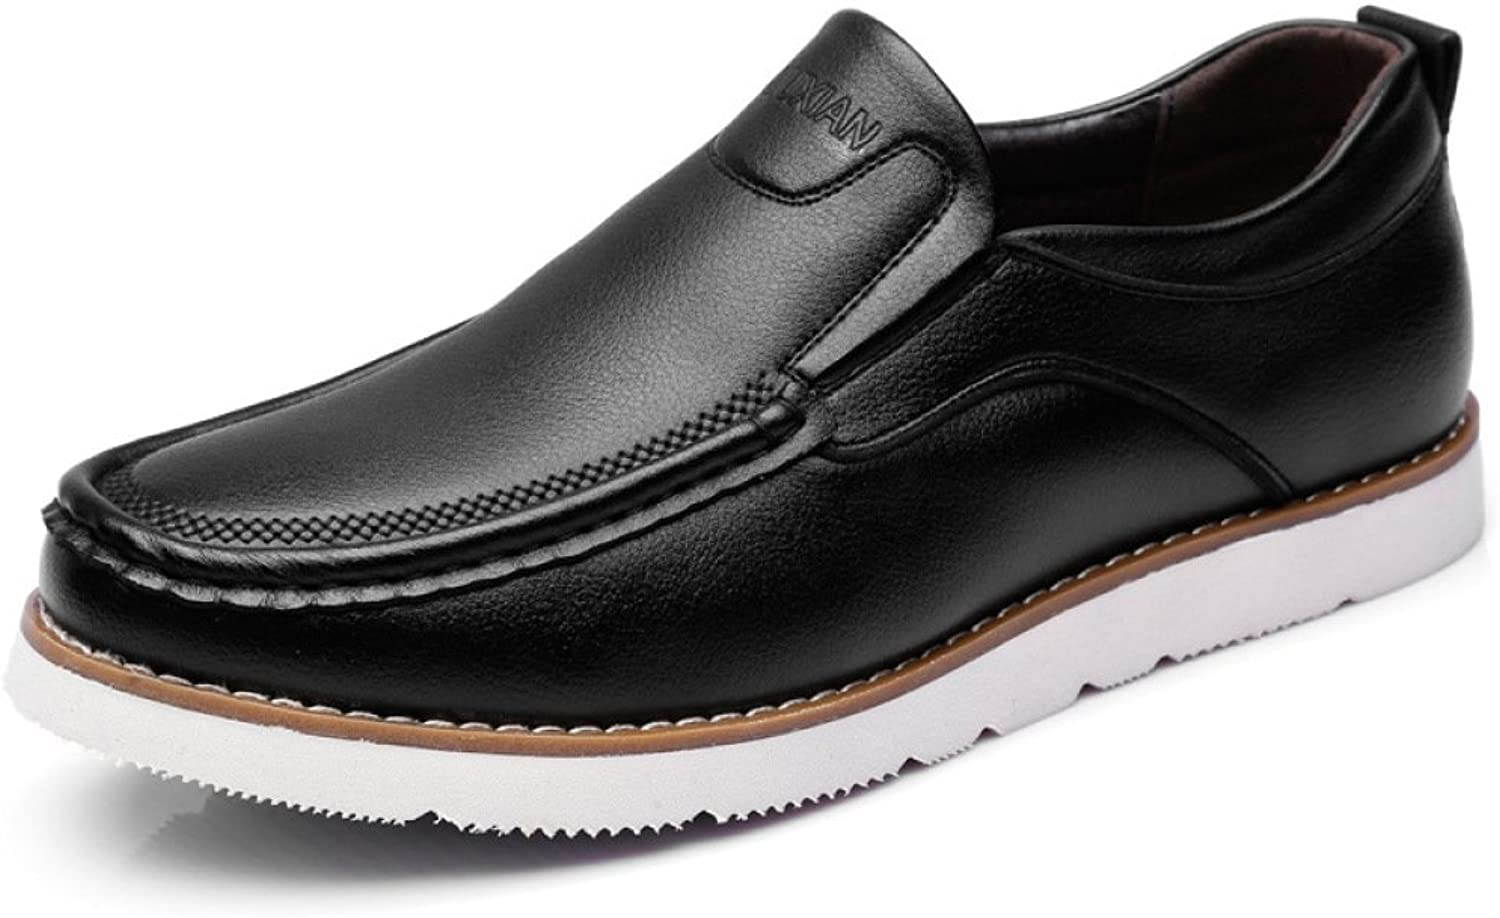 DHFUD Spring Men's shoes Lazy Breathable Casual shoes